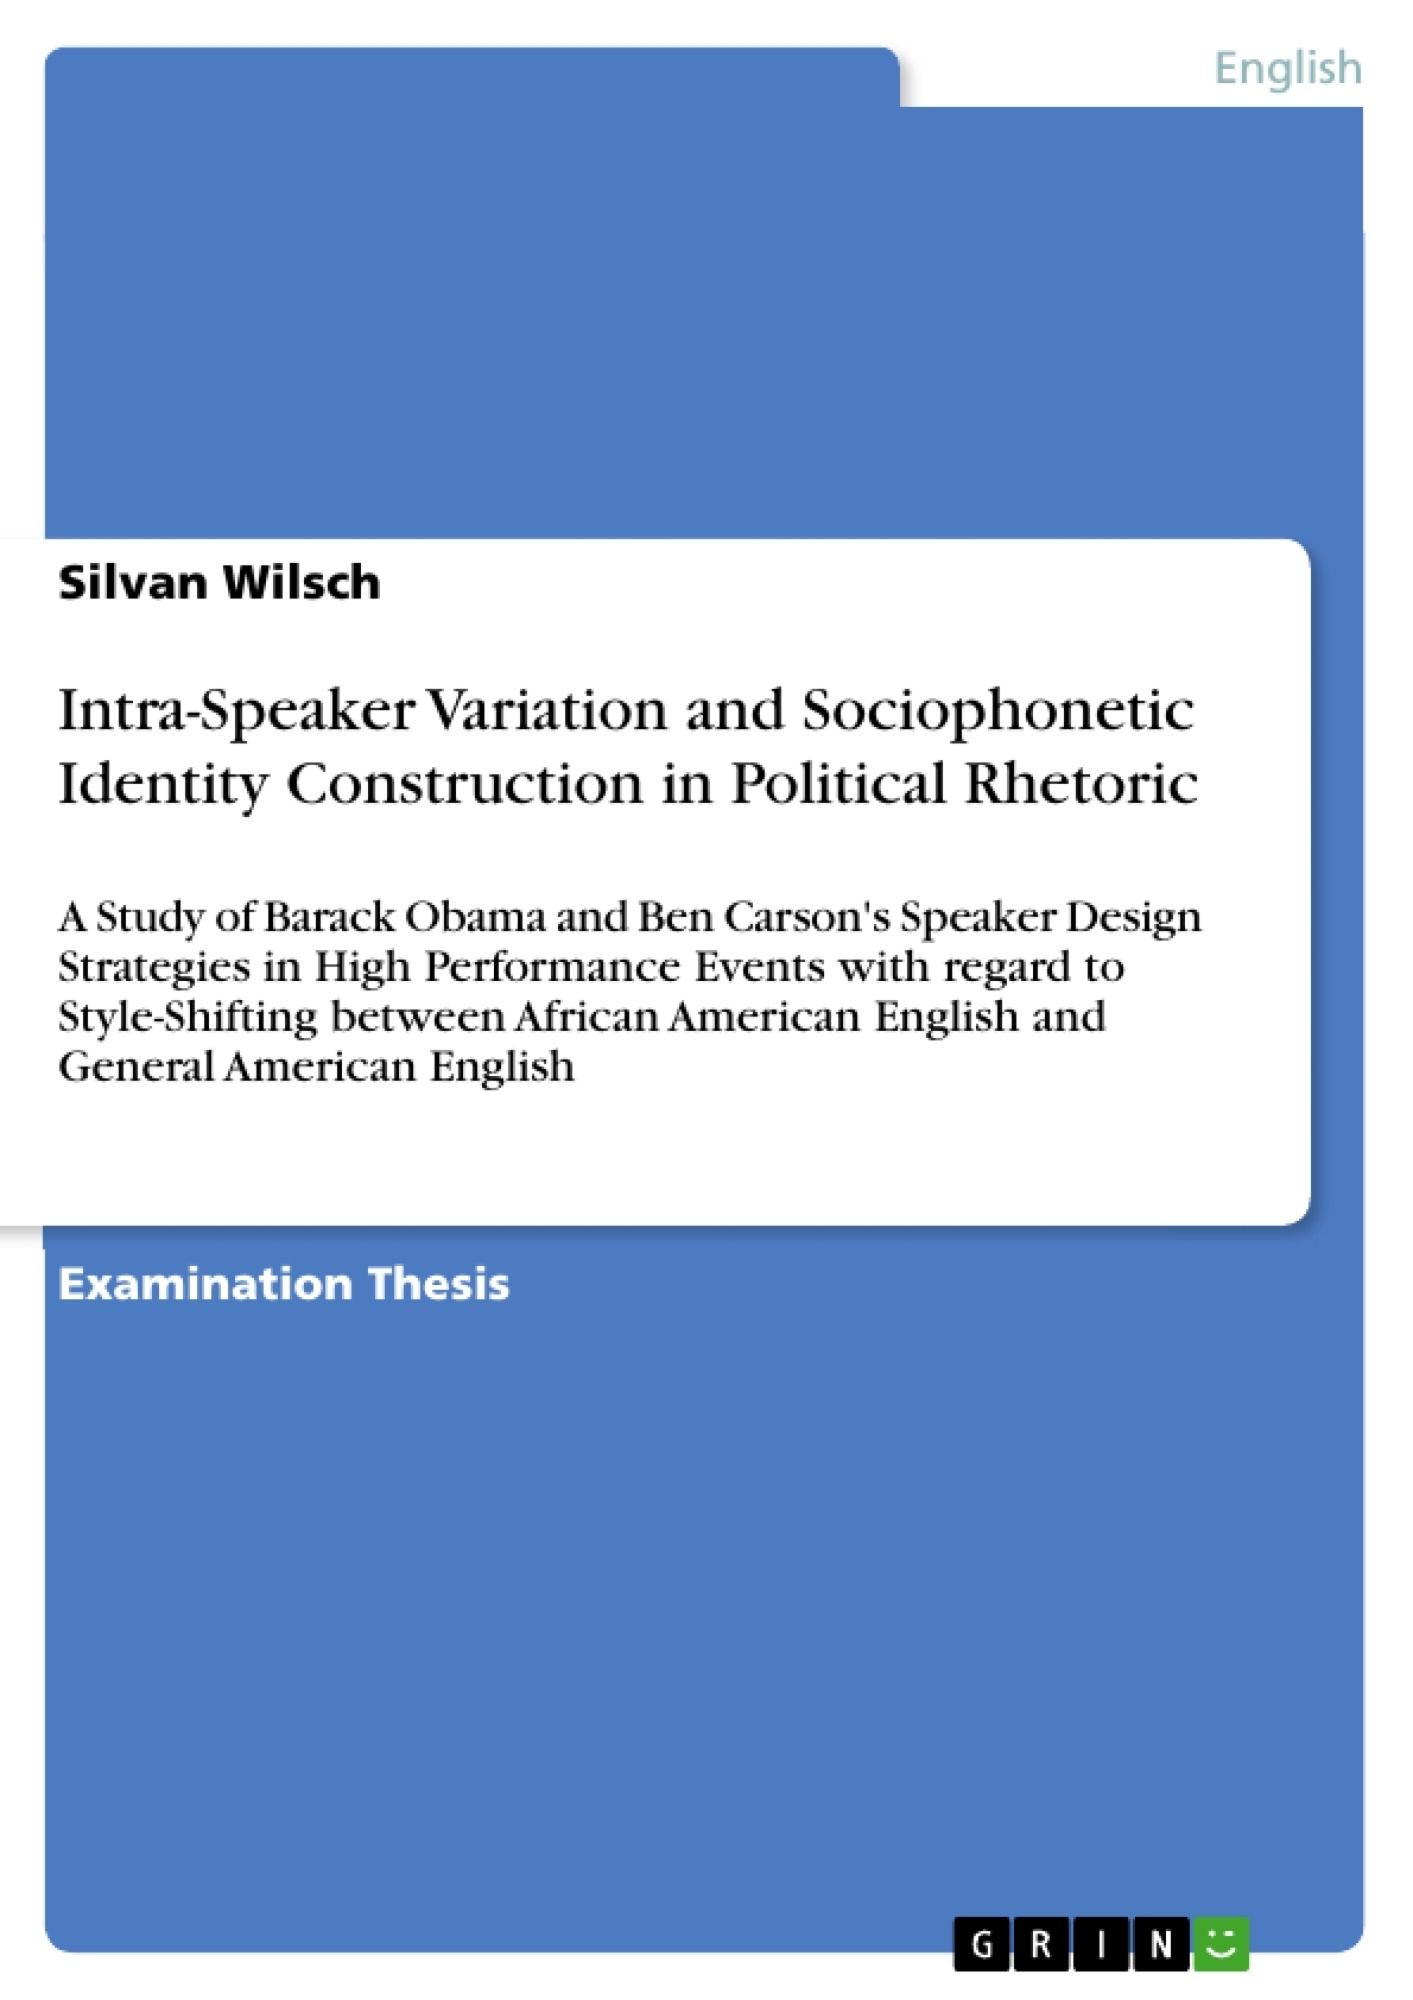 Title: Intra-Speaker Variation and Sociophonetic Identity Construction in Political Rhetoric